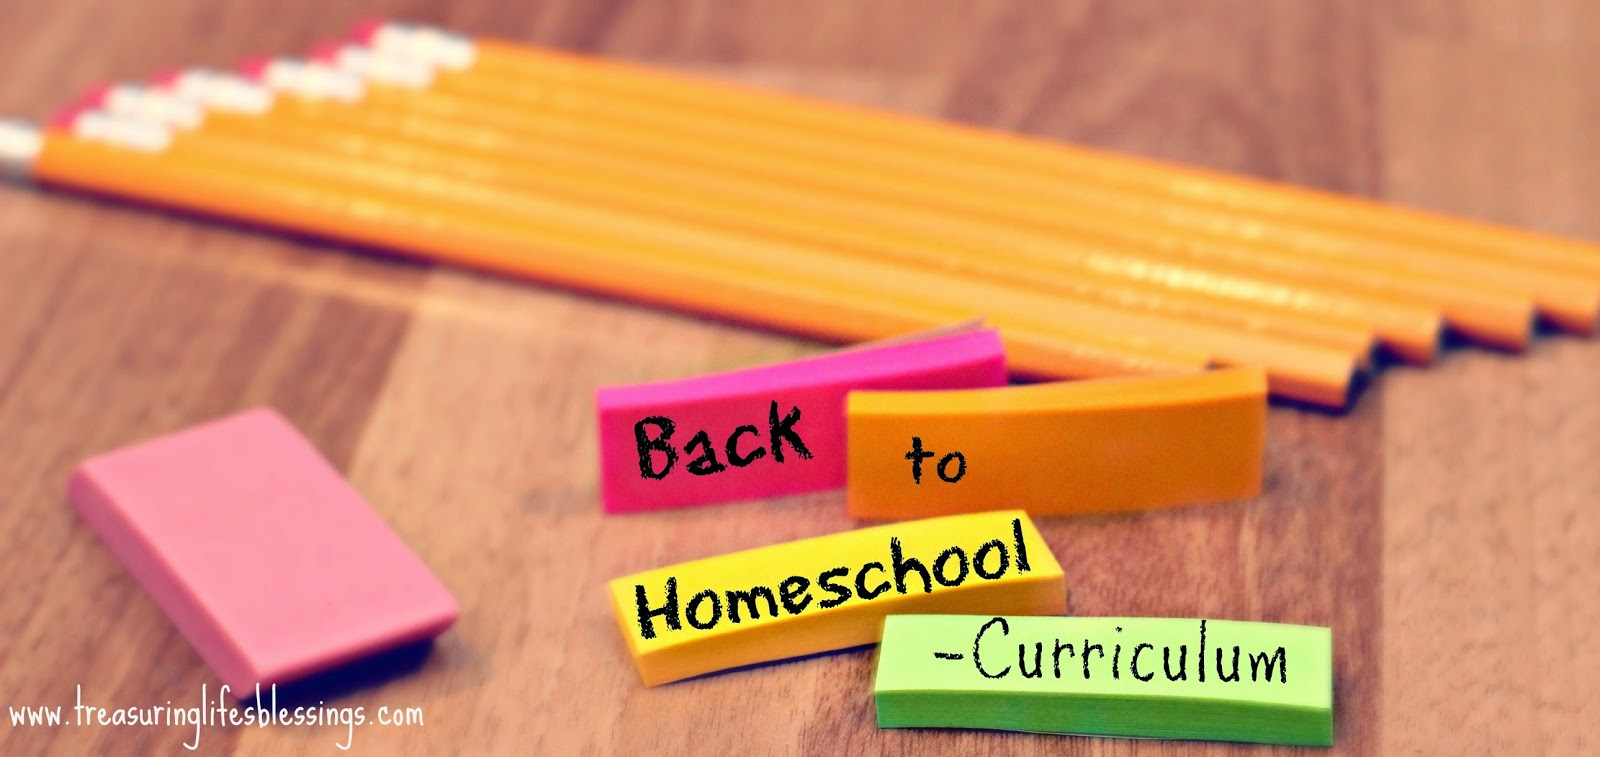 Back to Homeschool -Curriculum